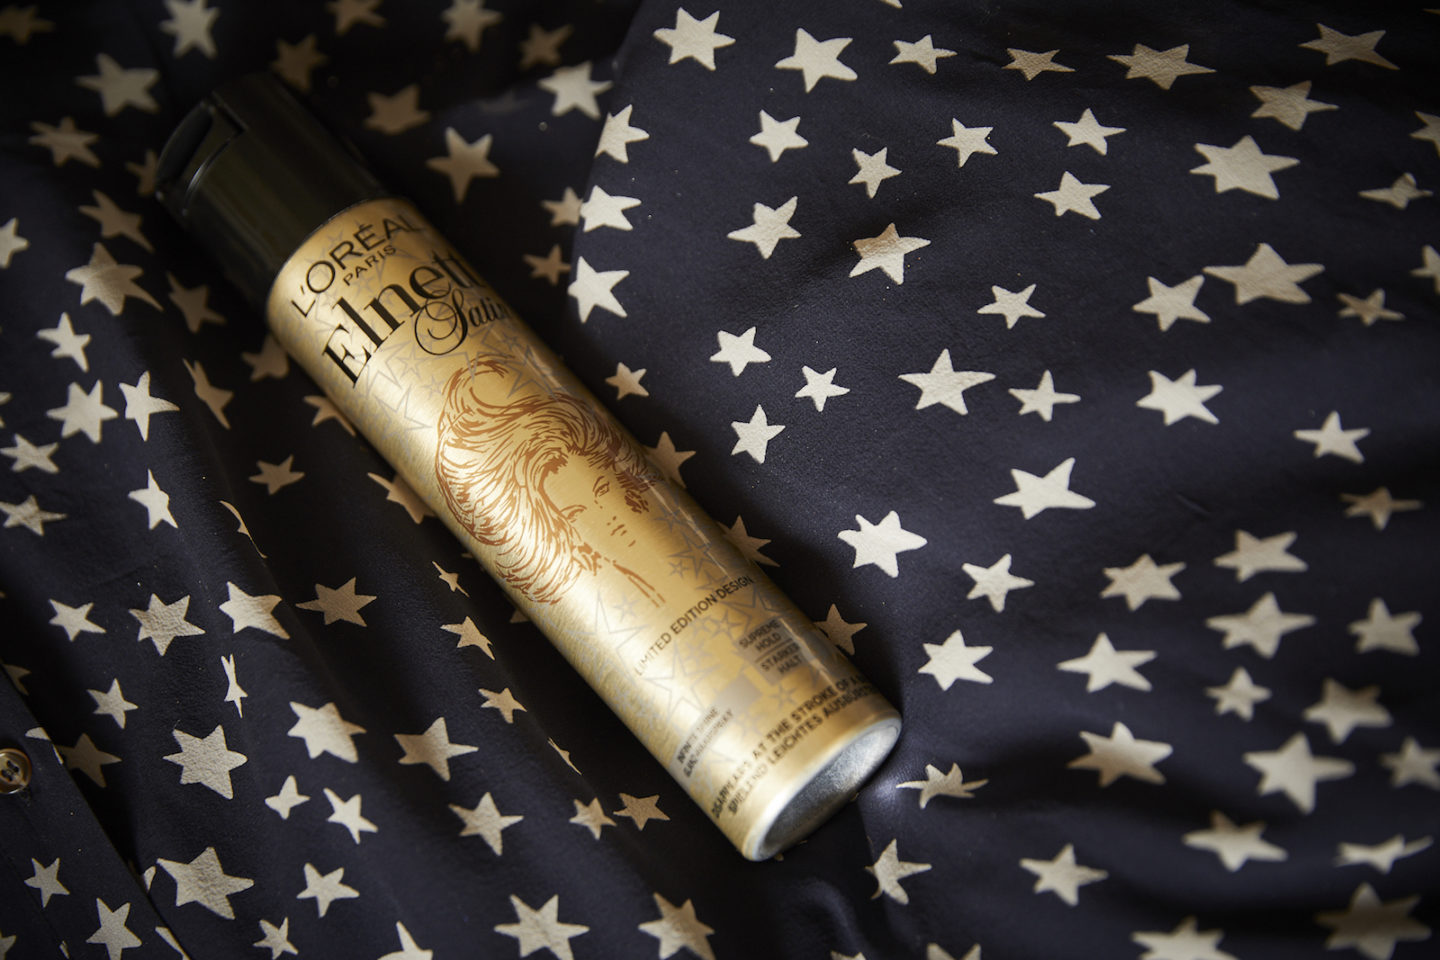 elnett starlight hair spray